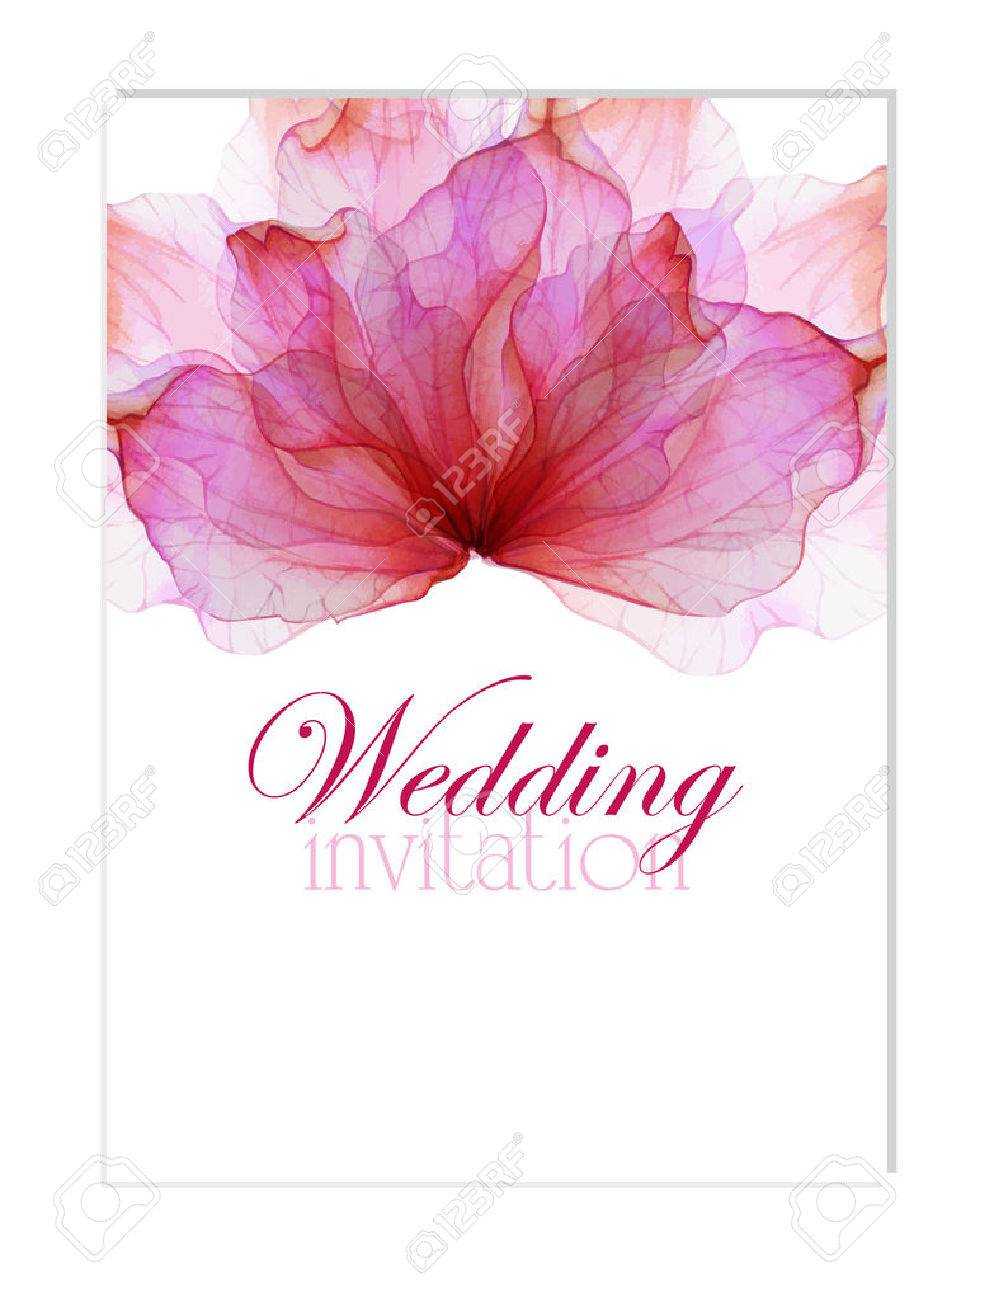 Floral Wedding Invitation With Watercolor Flower Petals Royalty Free ...